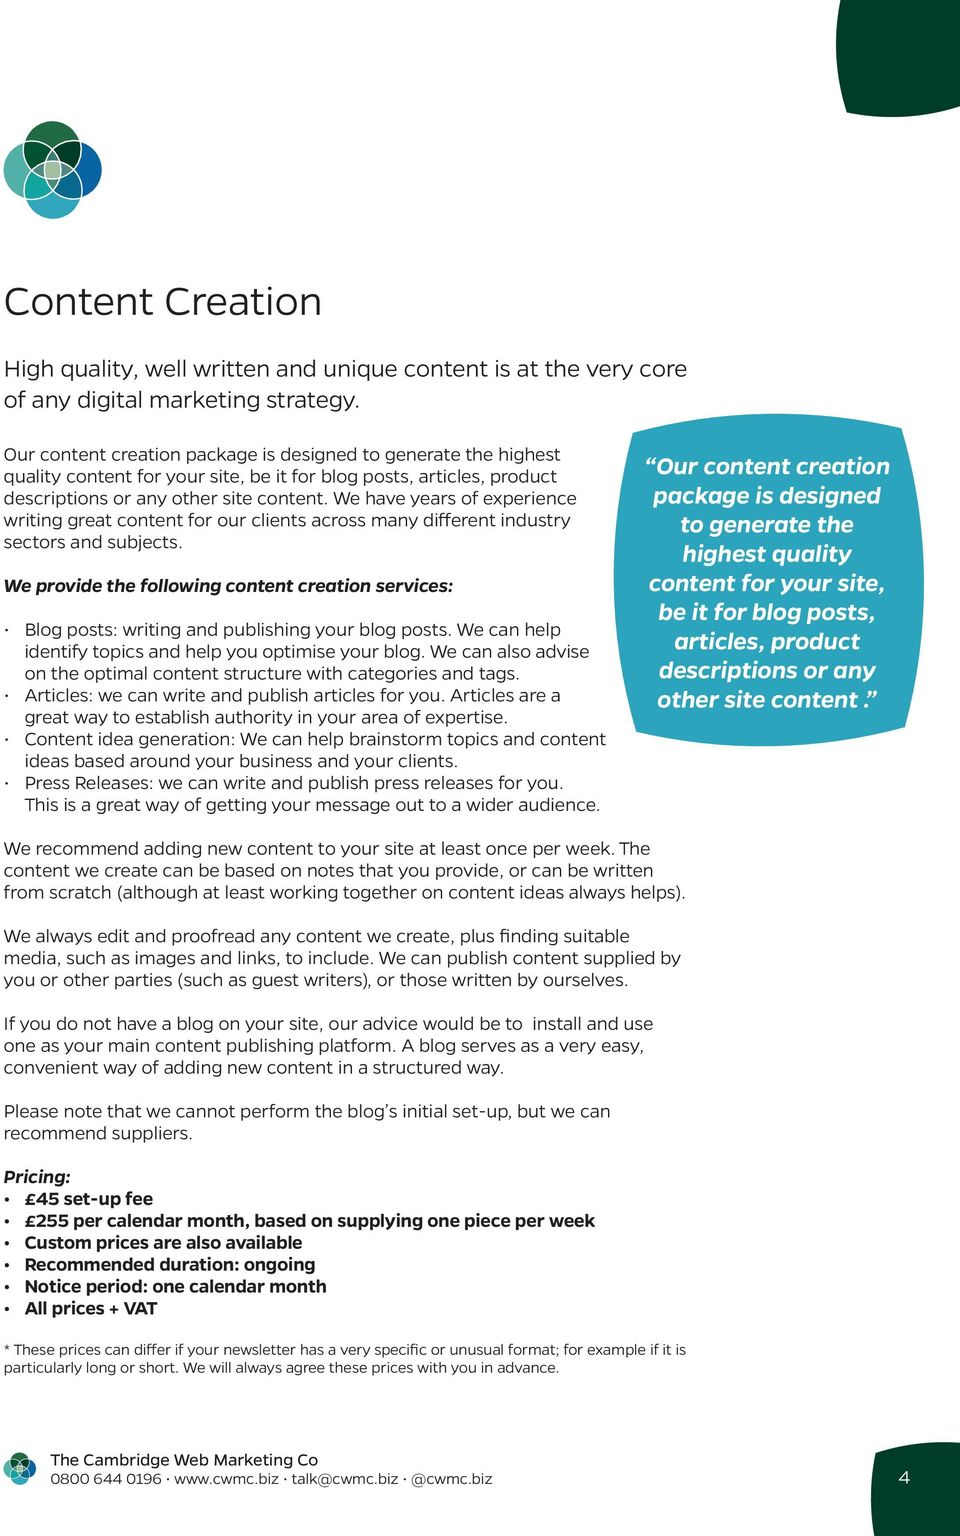 We have years of experience writing great content for our clients across many different industry sectors and subjects.